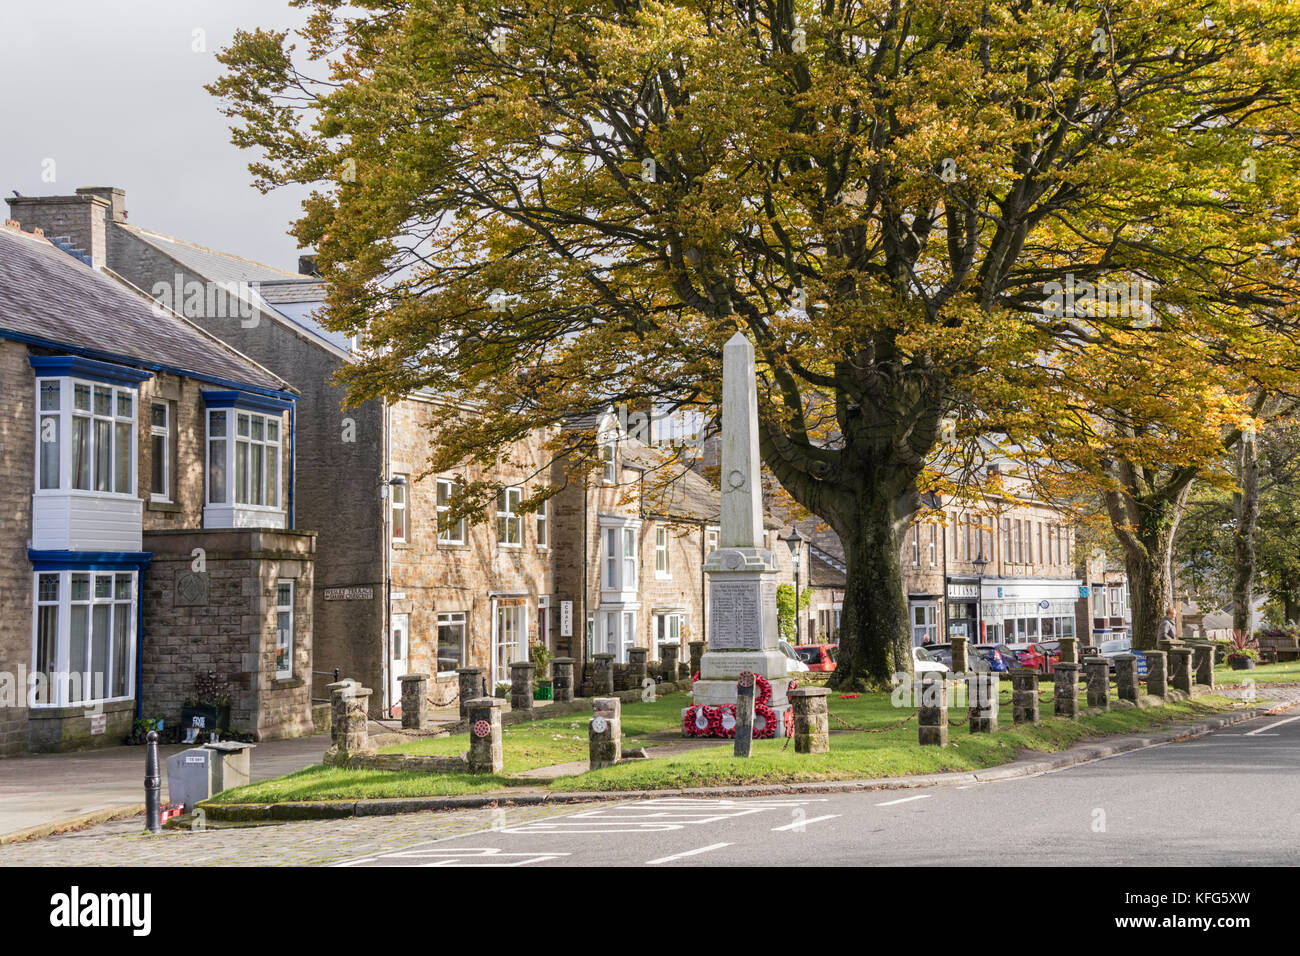 Autumn in Middleton-in-Teesdale, County Durham, England, UK - Stock Image